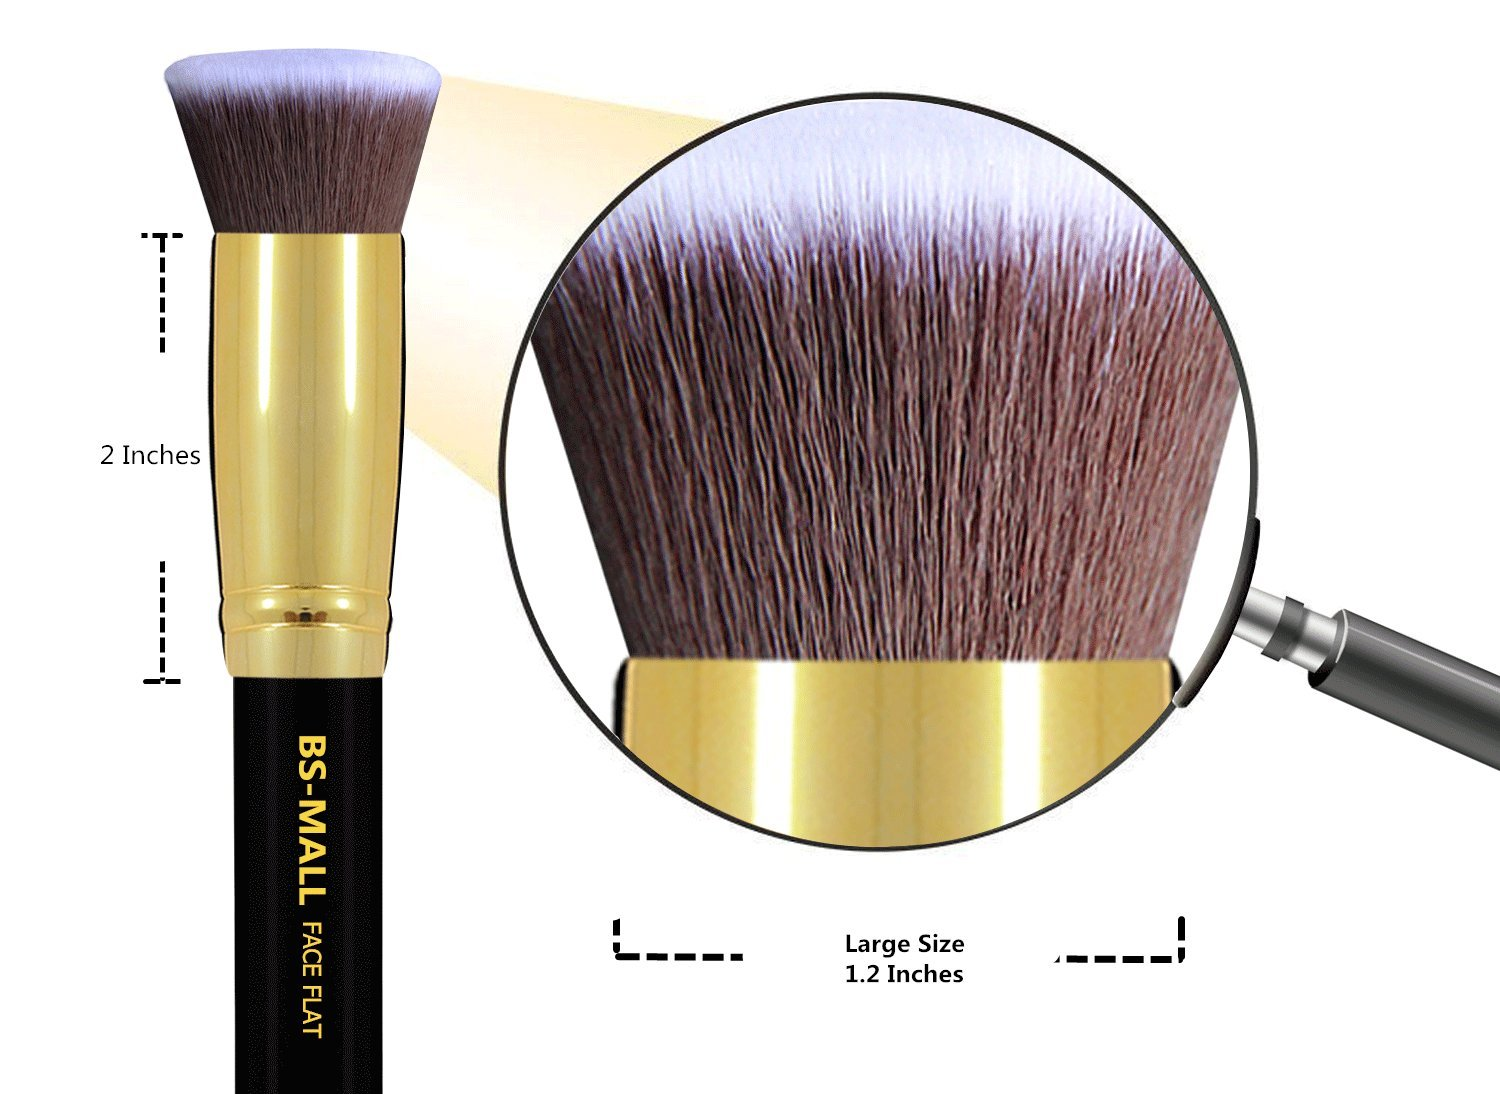 Kabuki brush set amazon